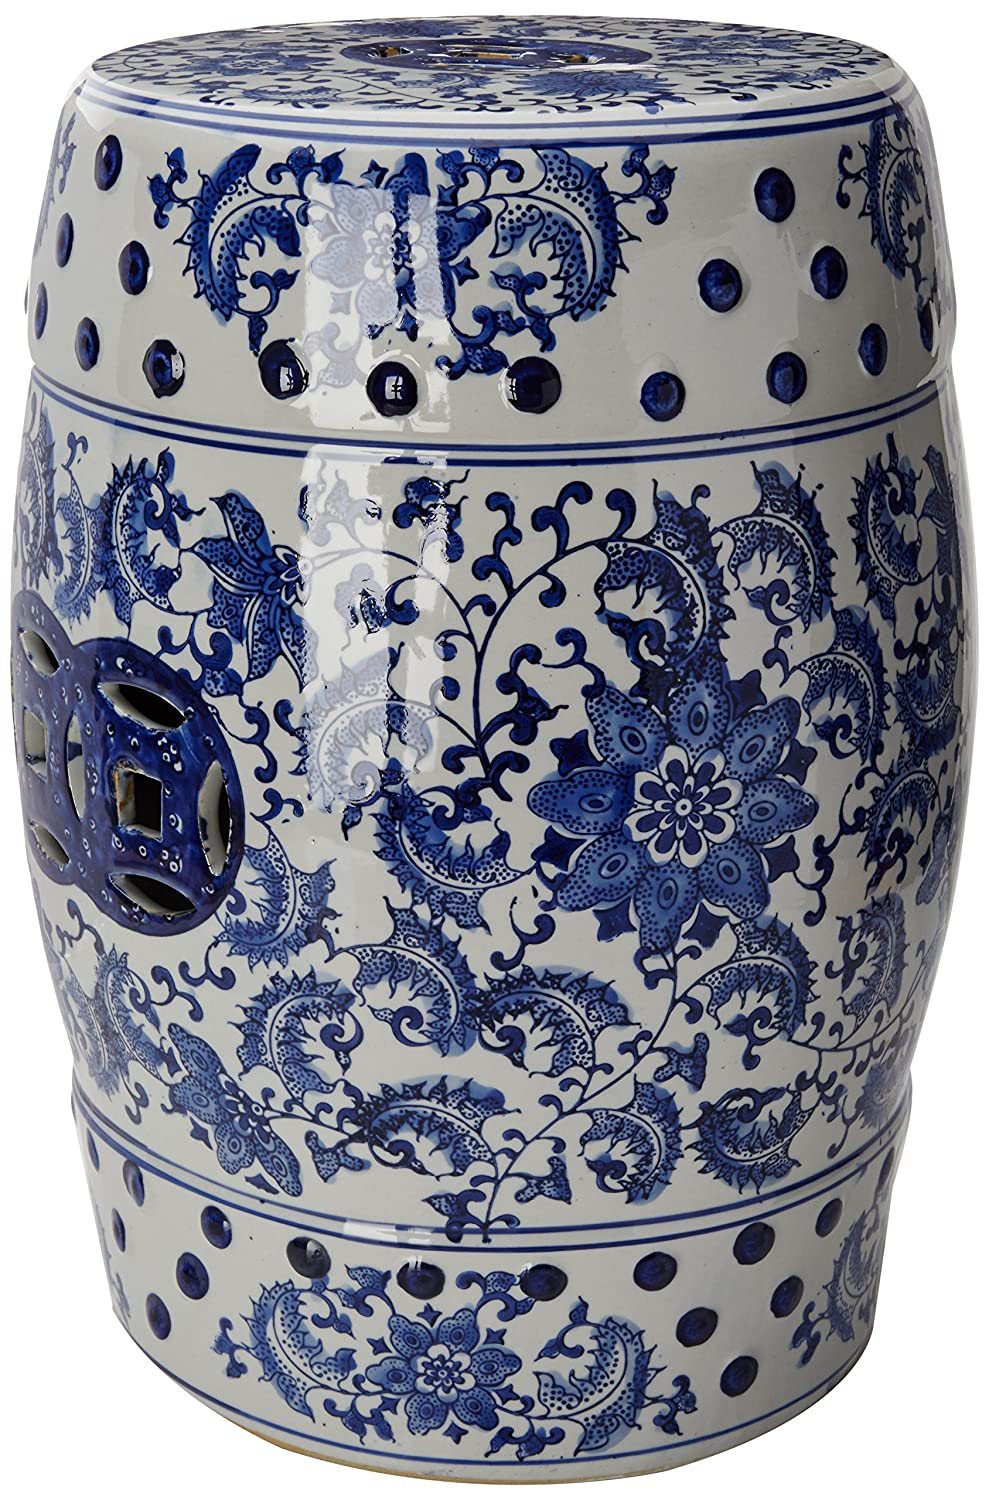 Oriental Furniture 18 Floral Blue White Porcelain Garden Stool Hardware Shop Stools